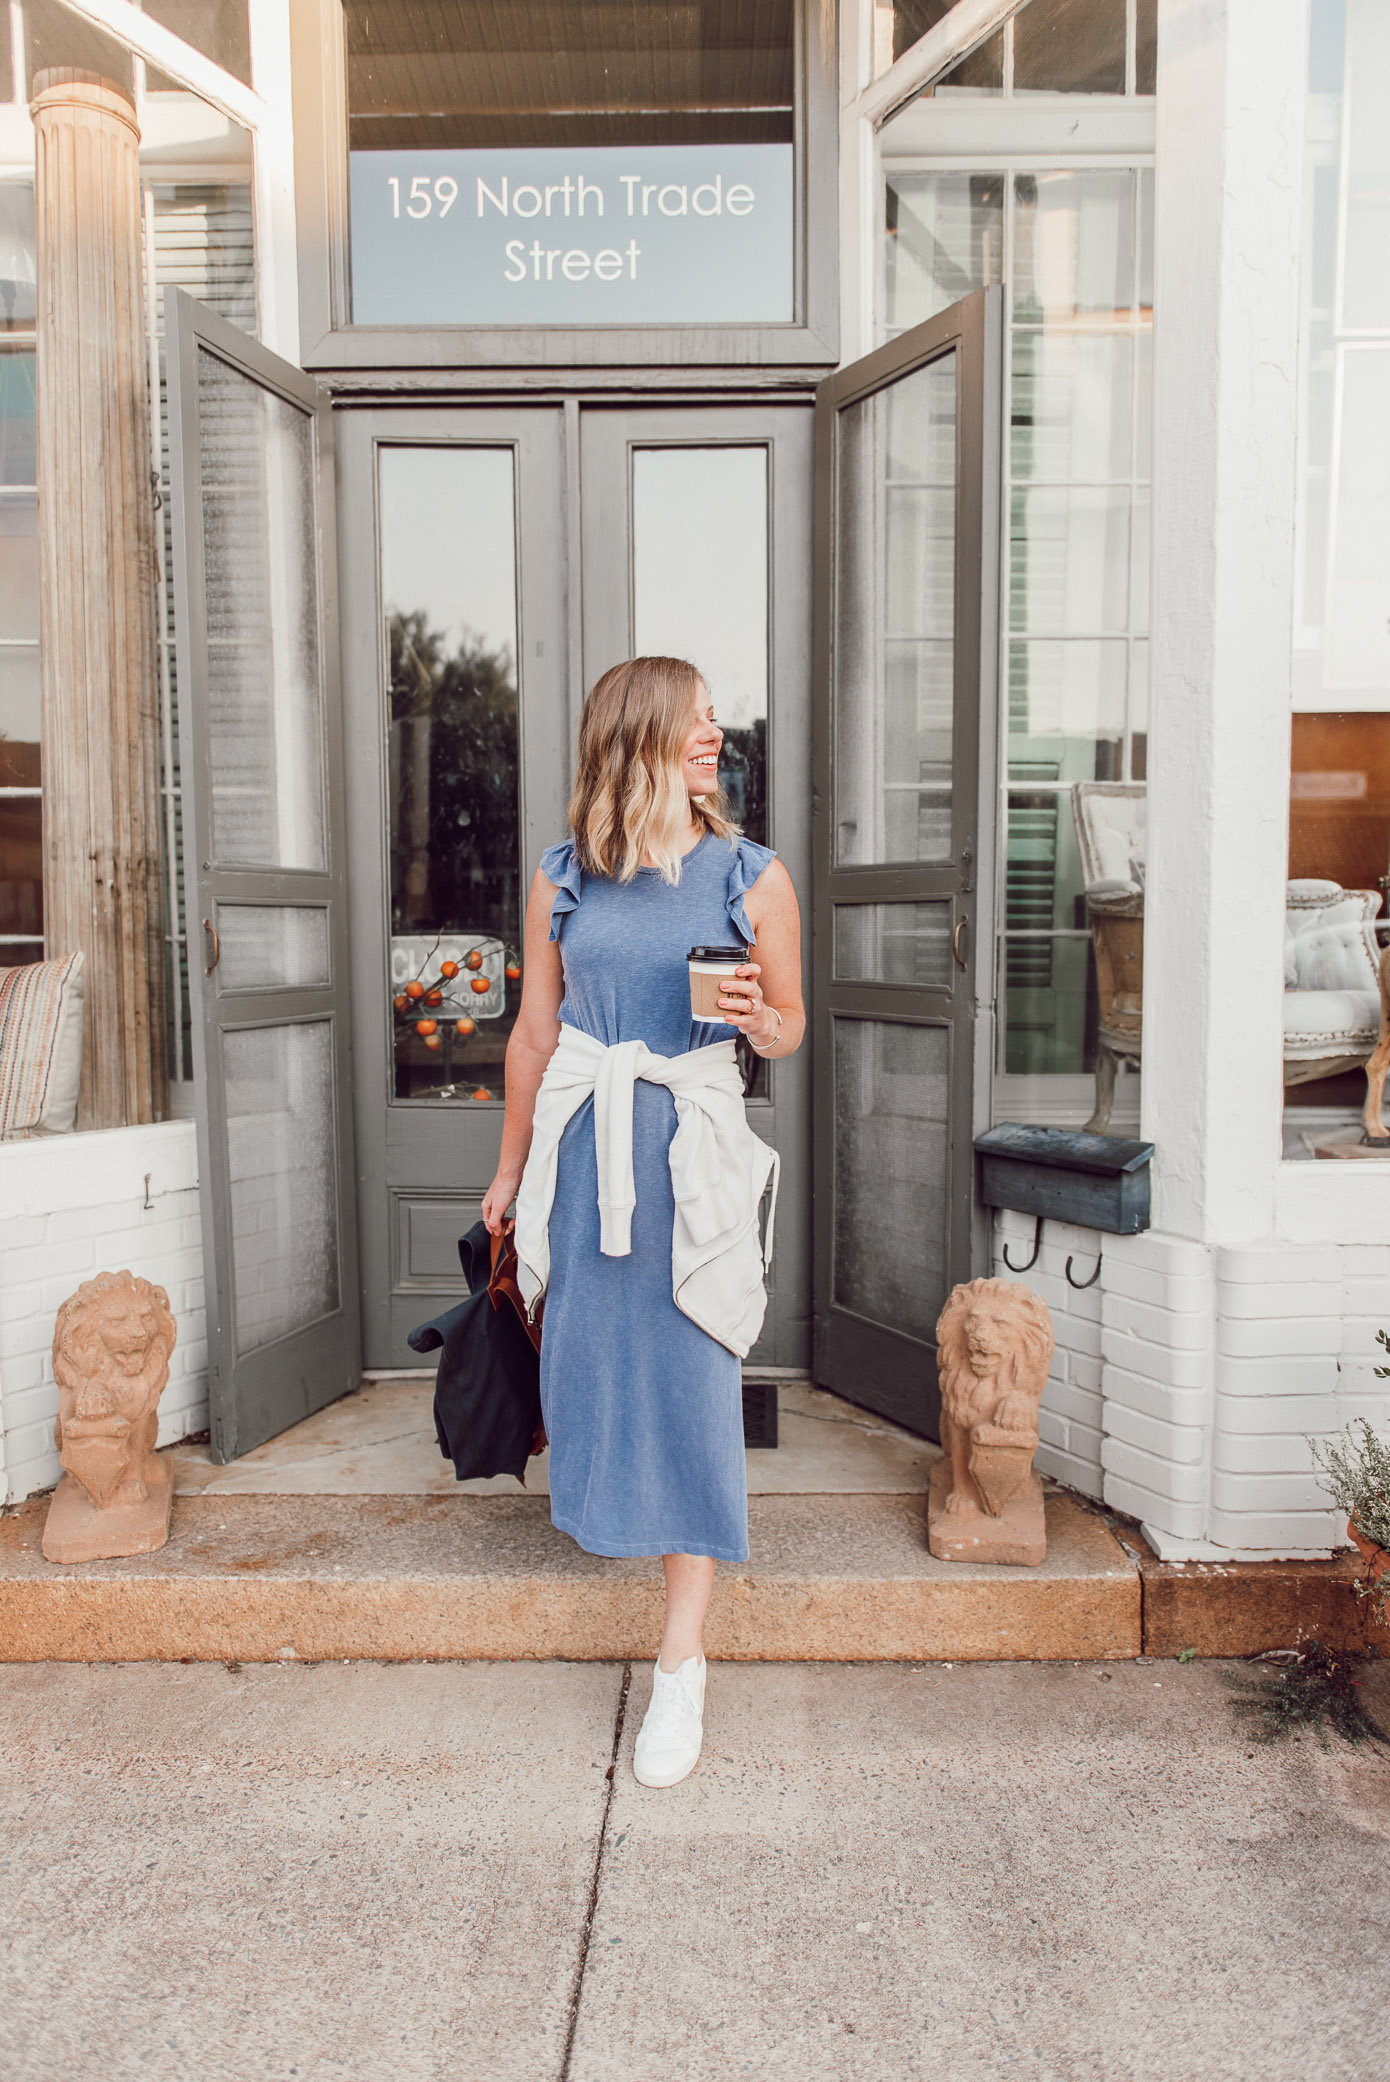 T-Shirt Midi Dress Styled Two Ways   One Dress Two Seasons - How to Style for Summer and then into the Fall Season   Louella Reese